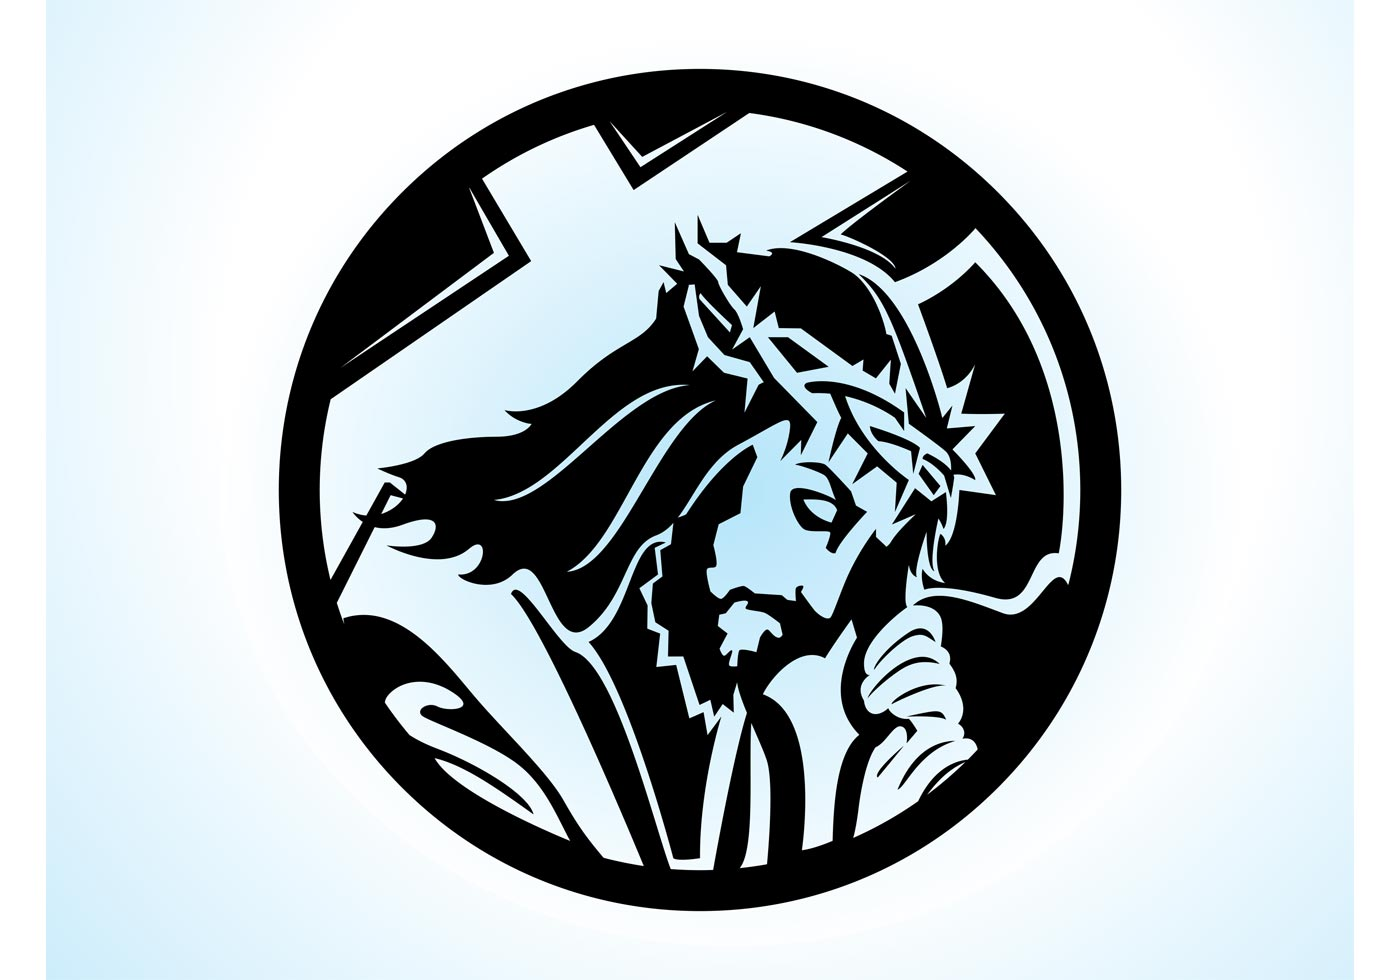 Cool Open Bible Background Jesus With Cross - Dow...